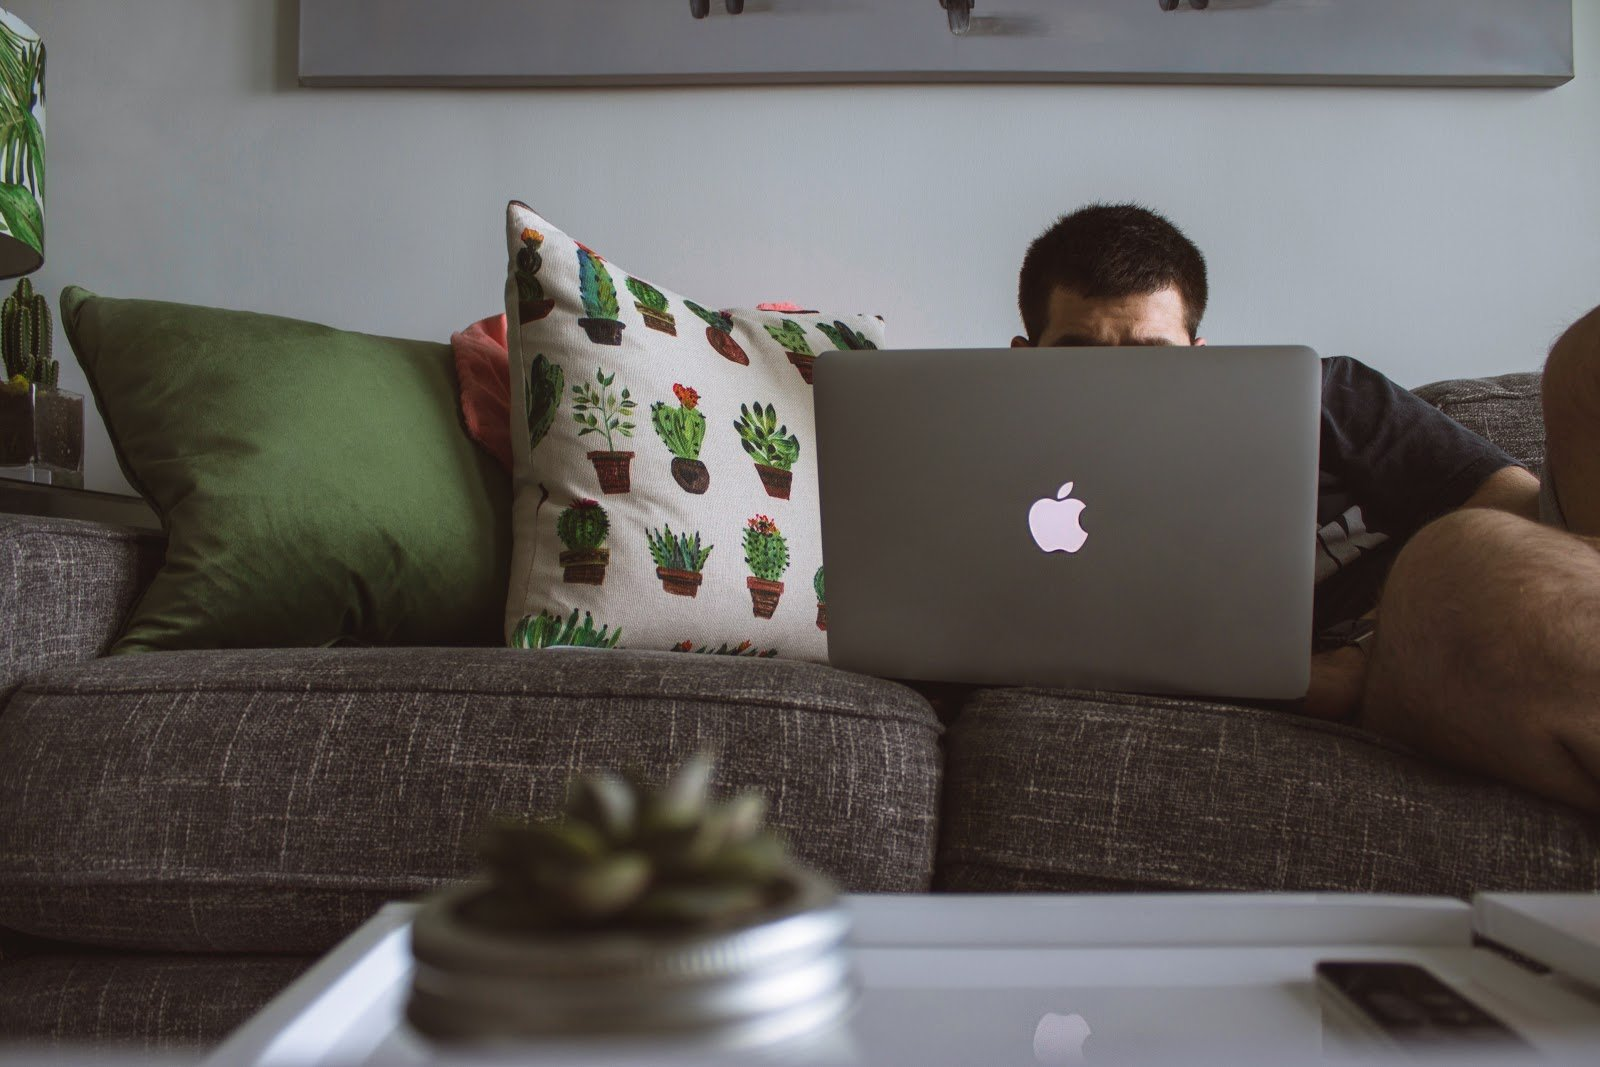 Working From Home: How It Benefits Both Employees And Employers